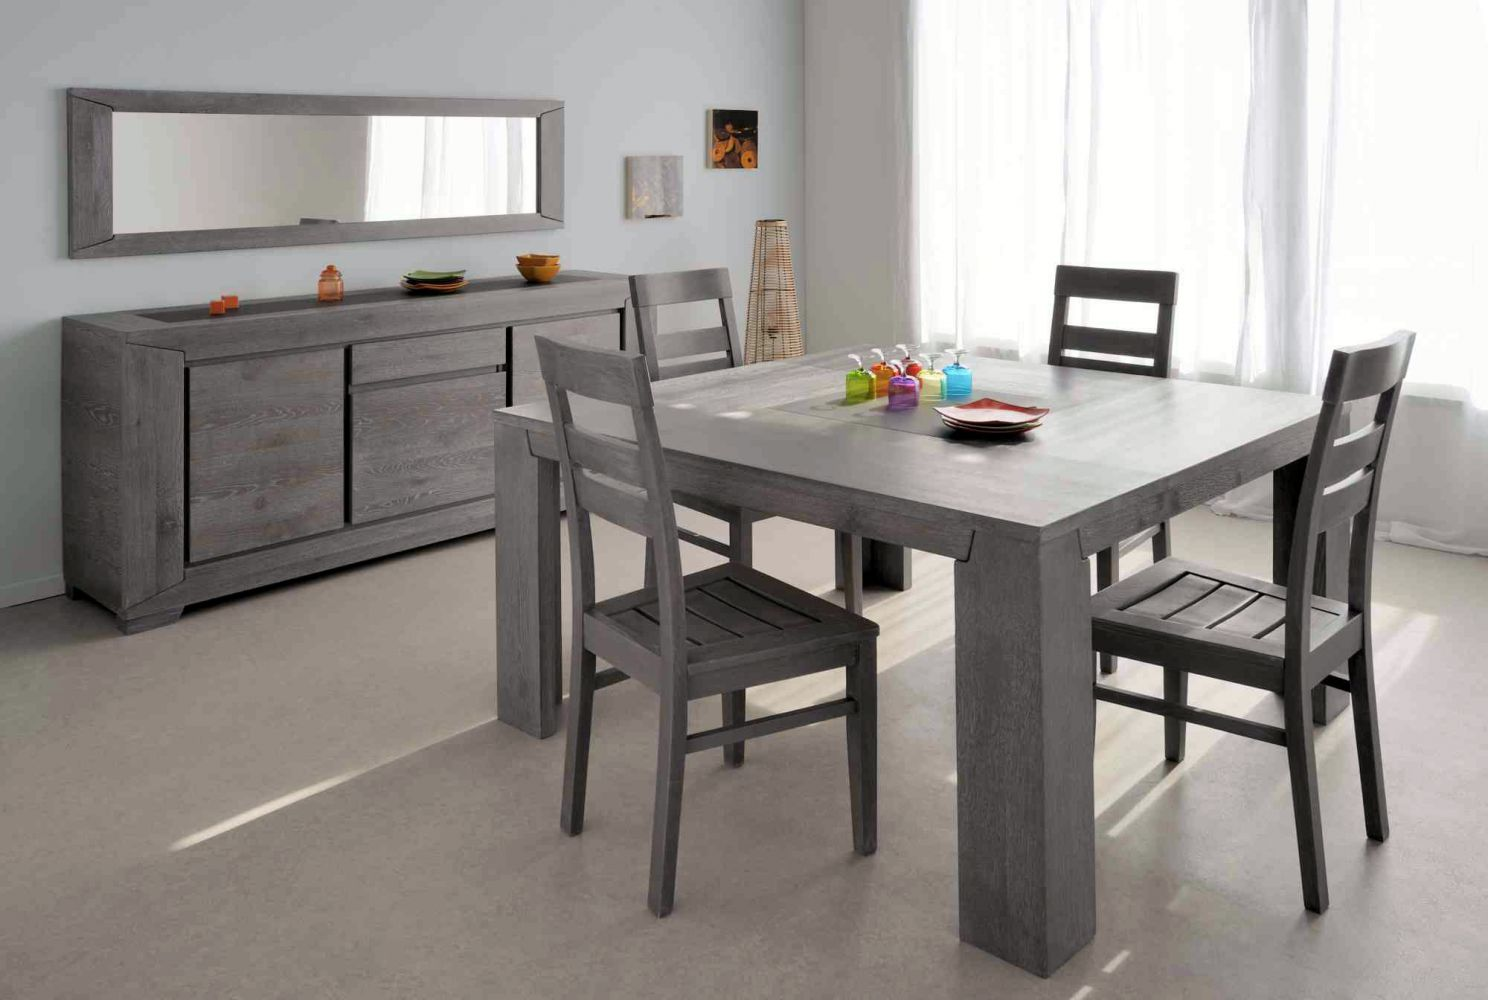 Salle a manger compl te conforama table carr e meuble et for Conforama table manger